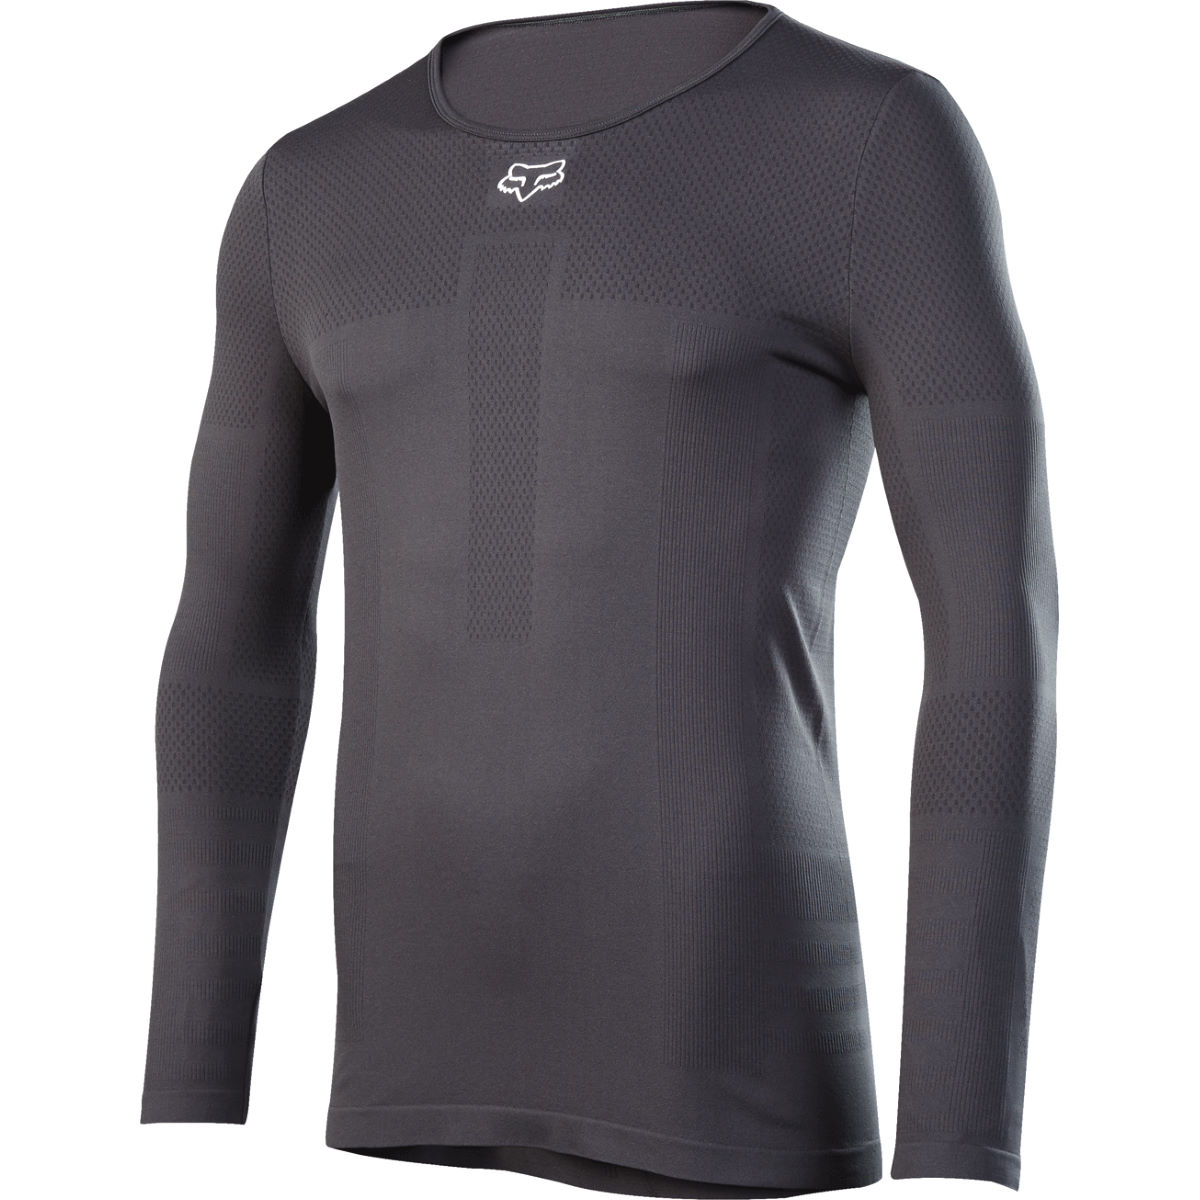 Image of Fox Racing Attack Fire Long Sleeve Baselayer Base Layers